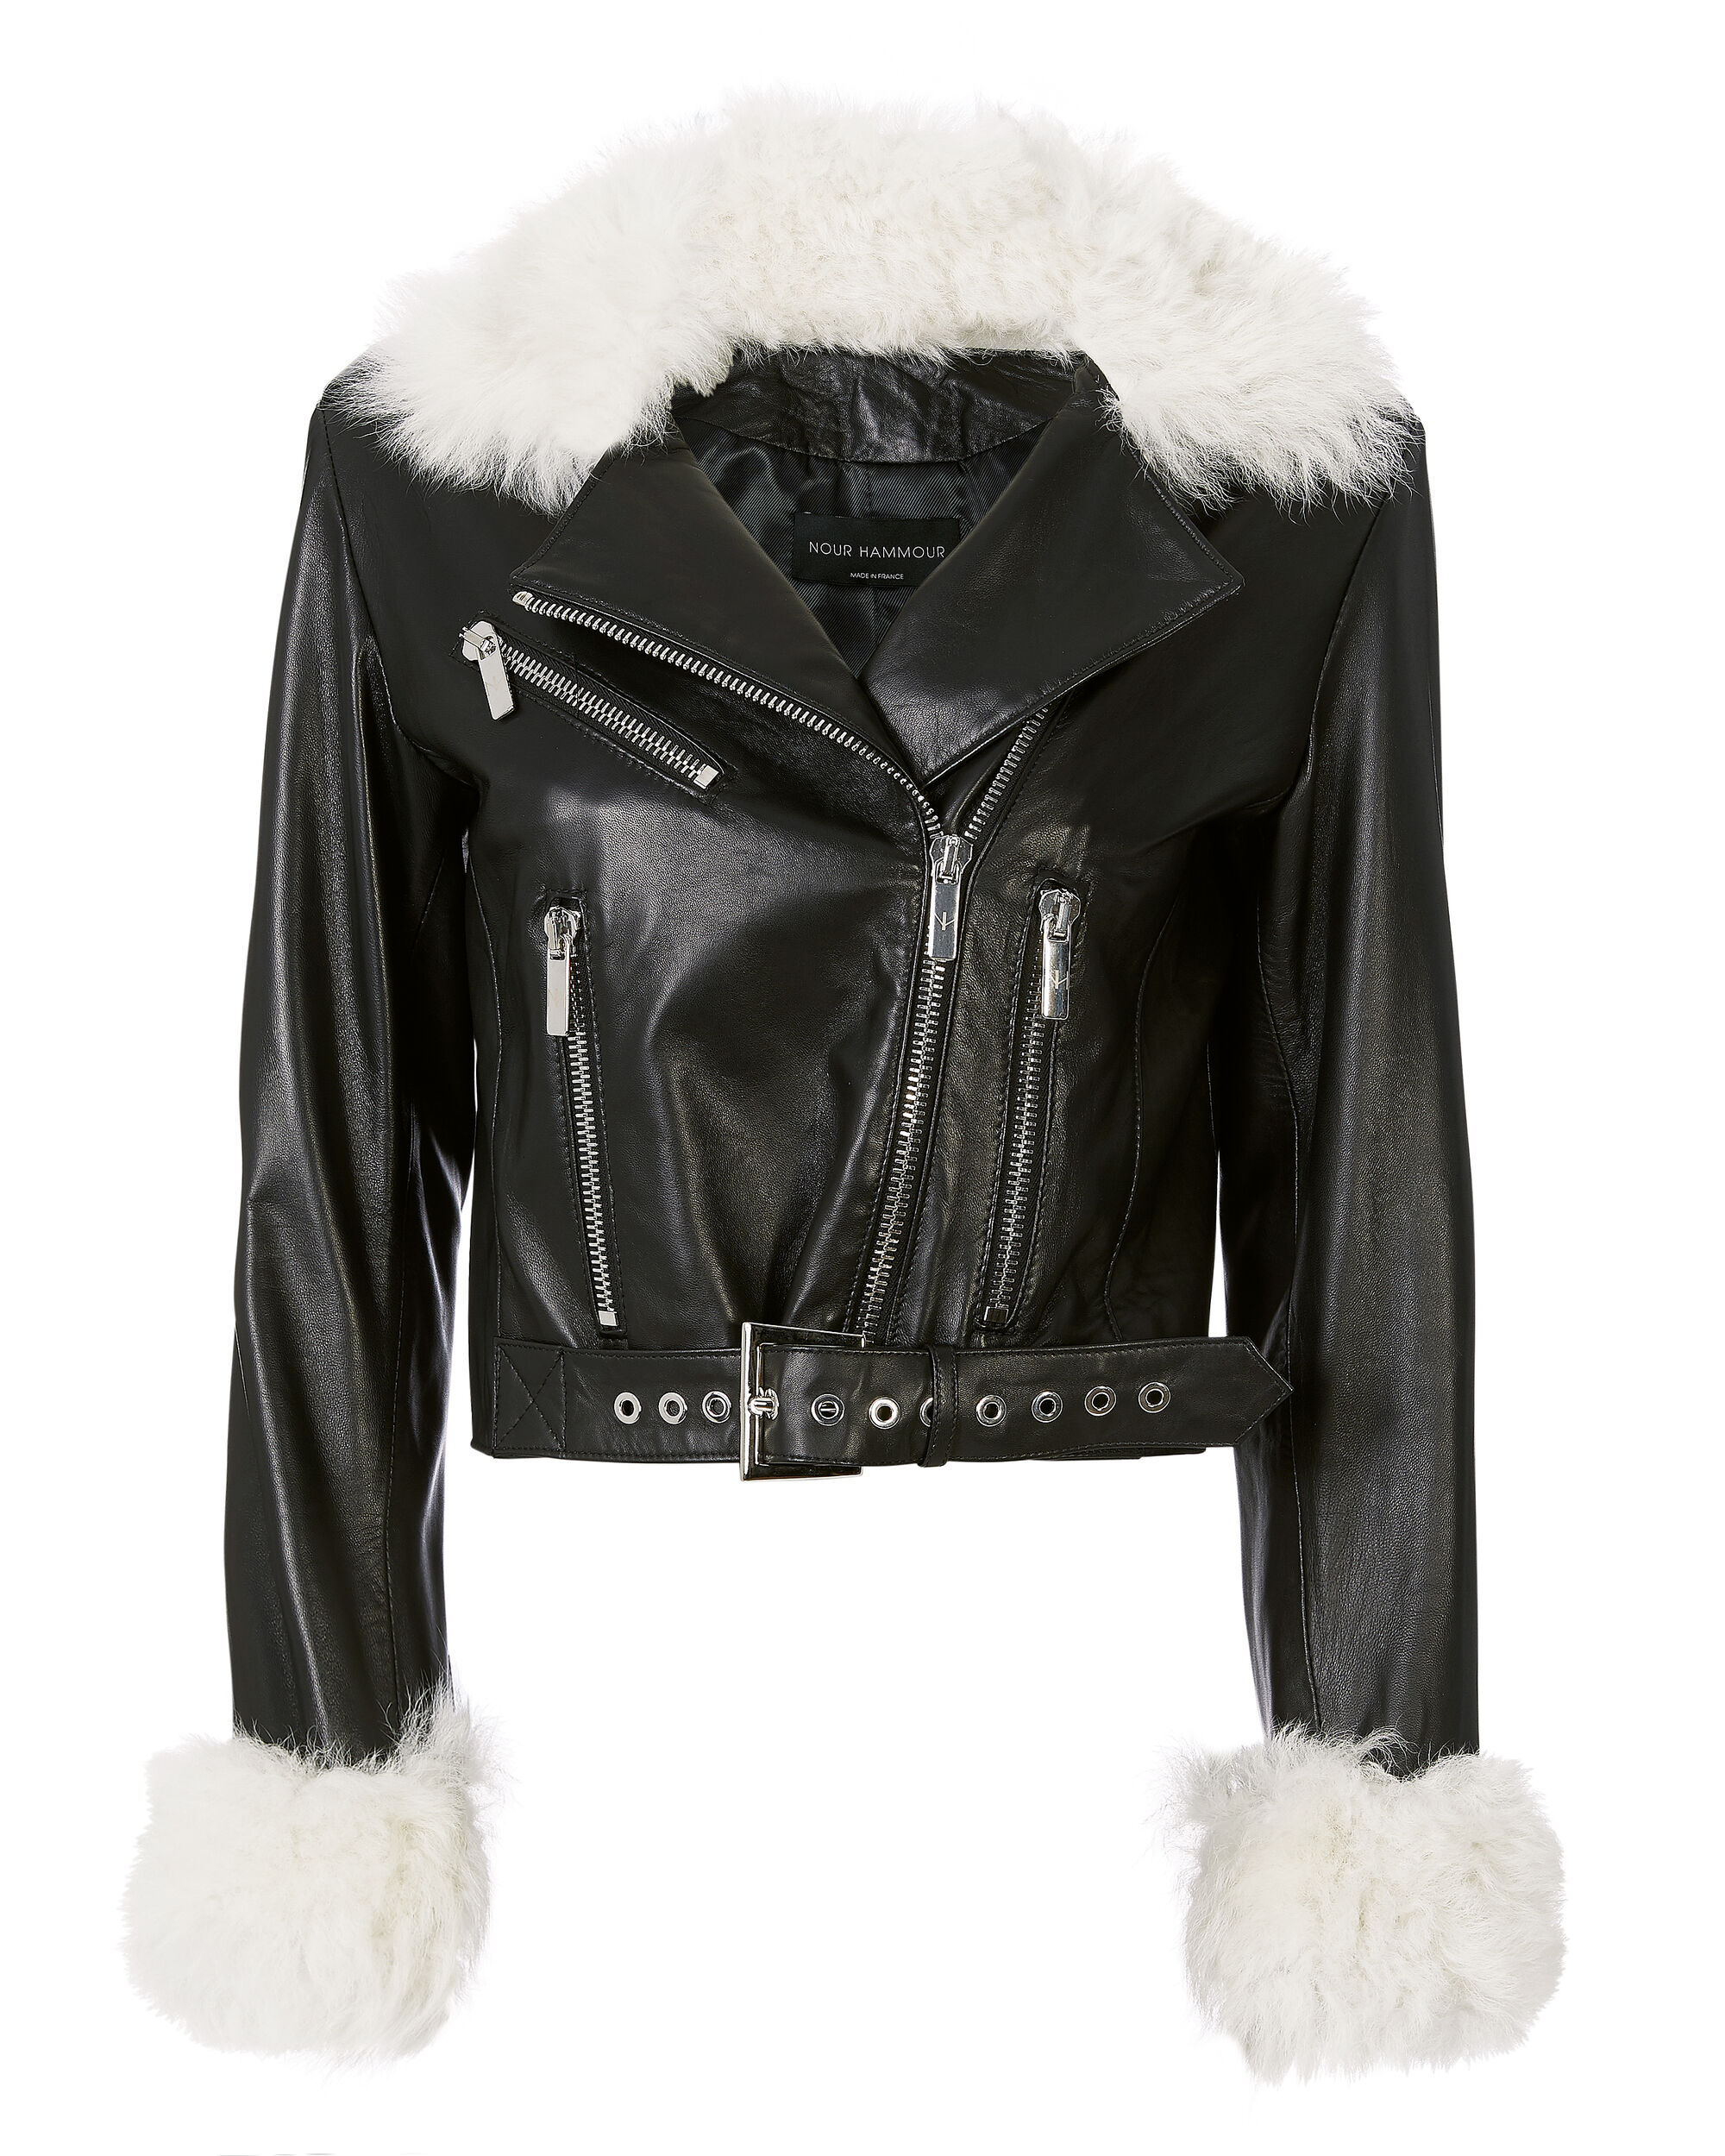 NOUR HAMMOUR White Shearling Trim Leather Jacket